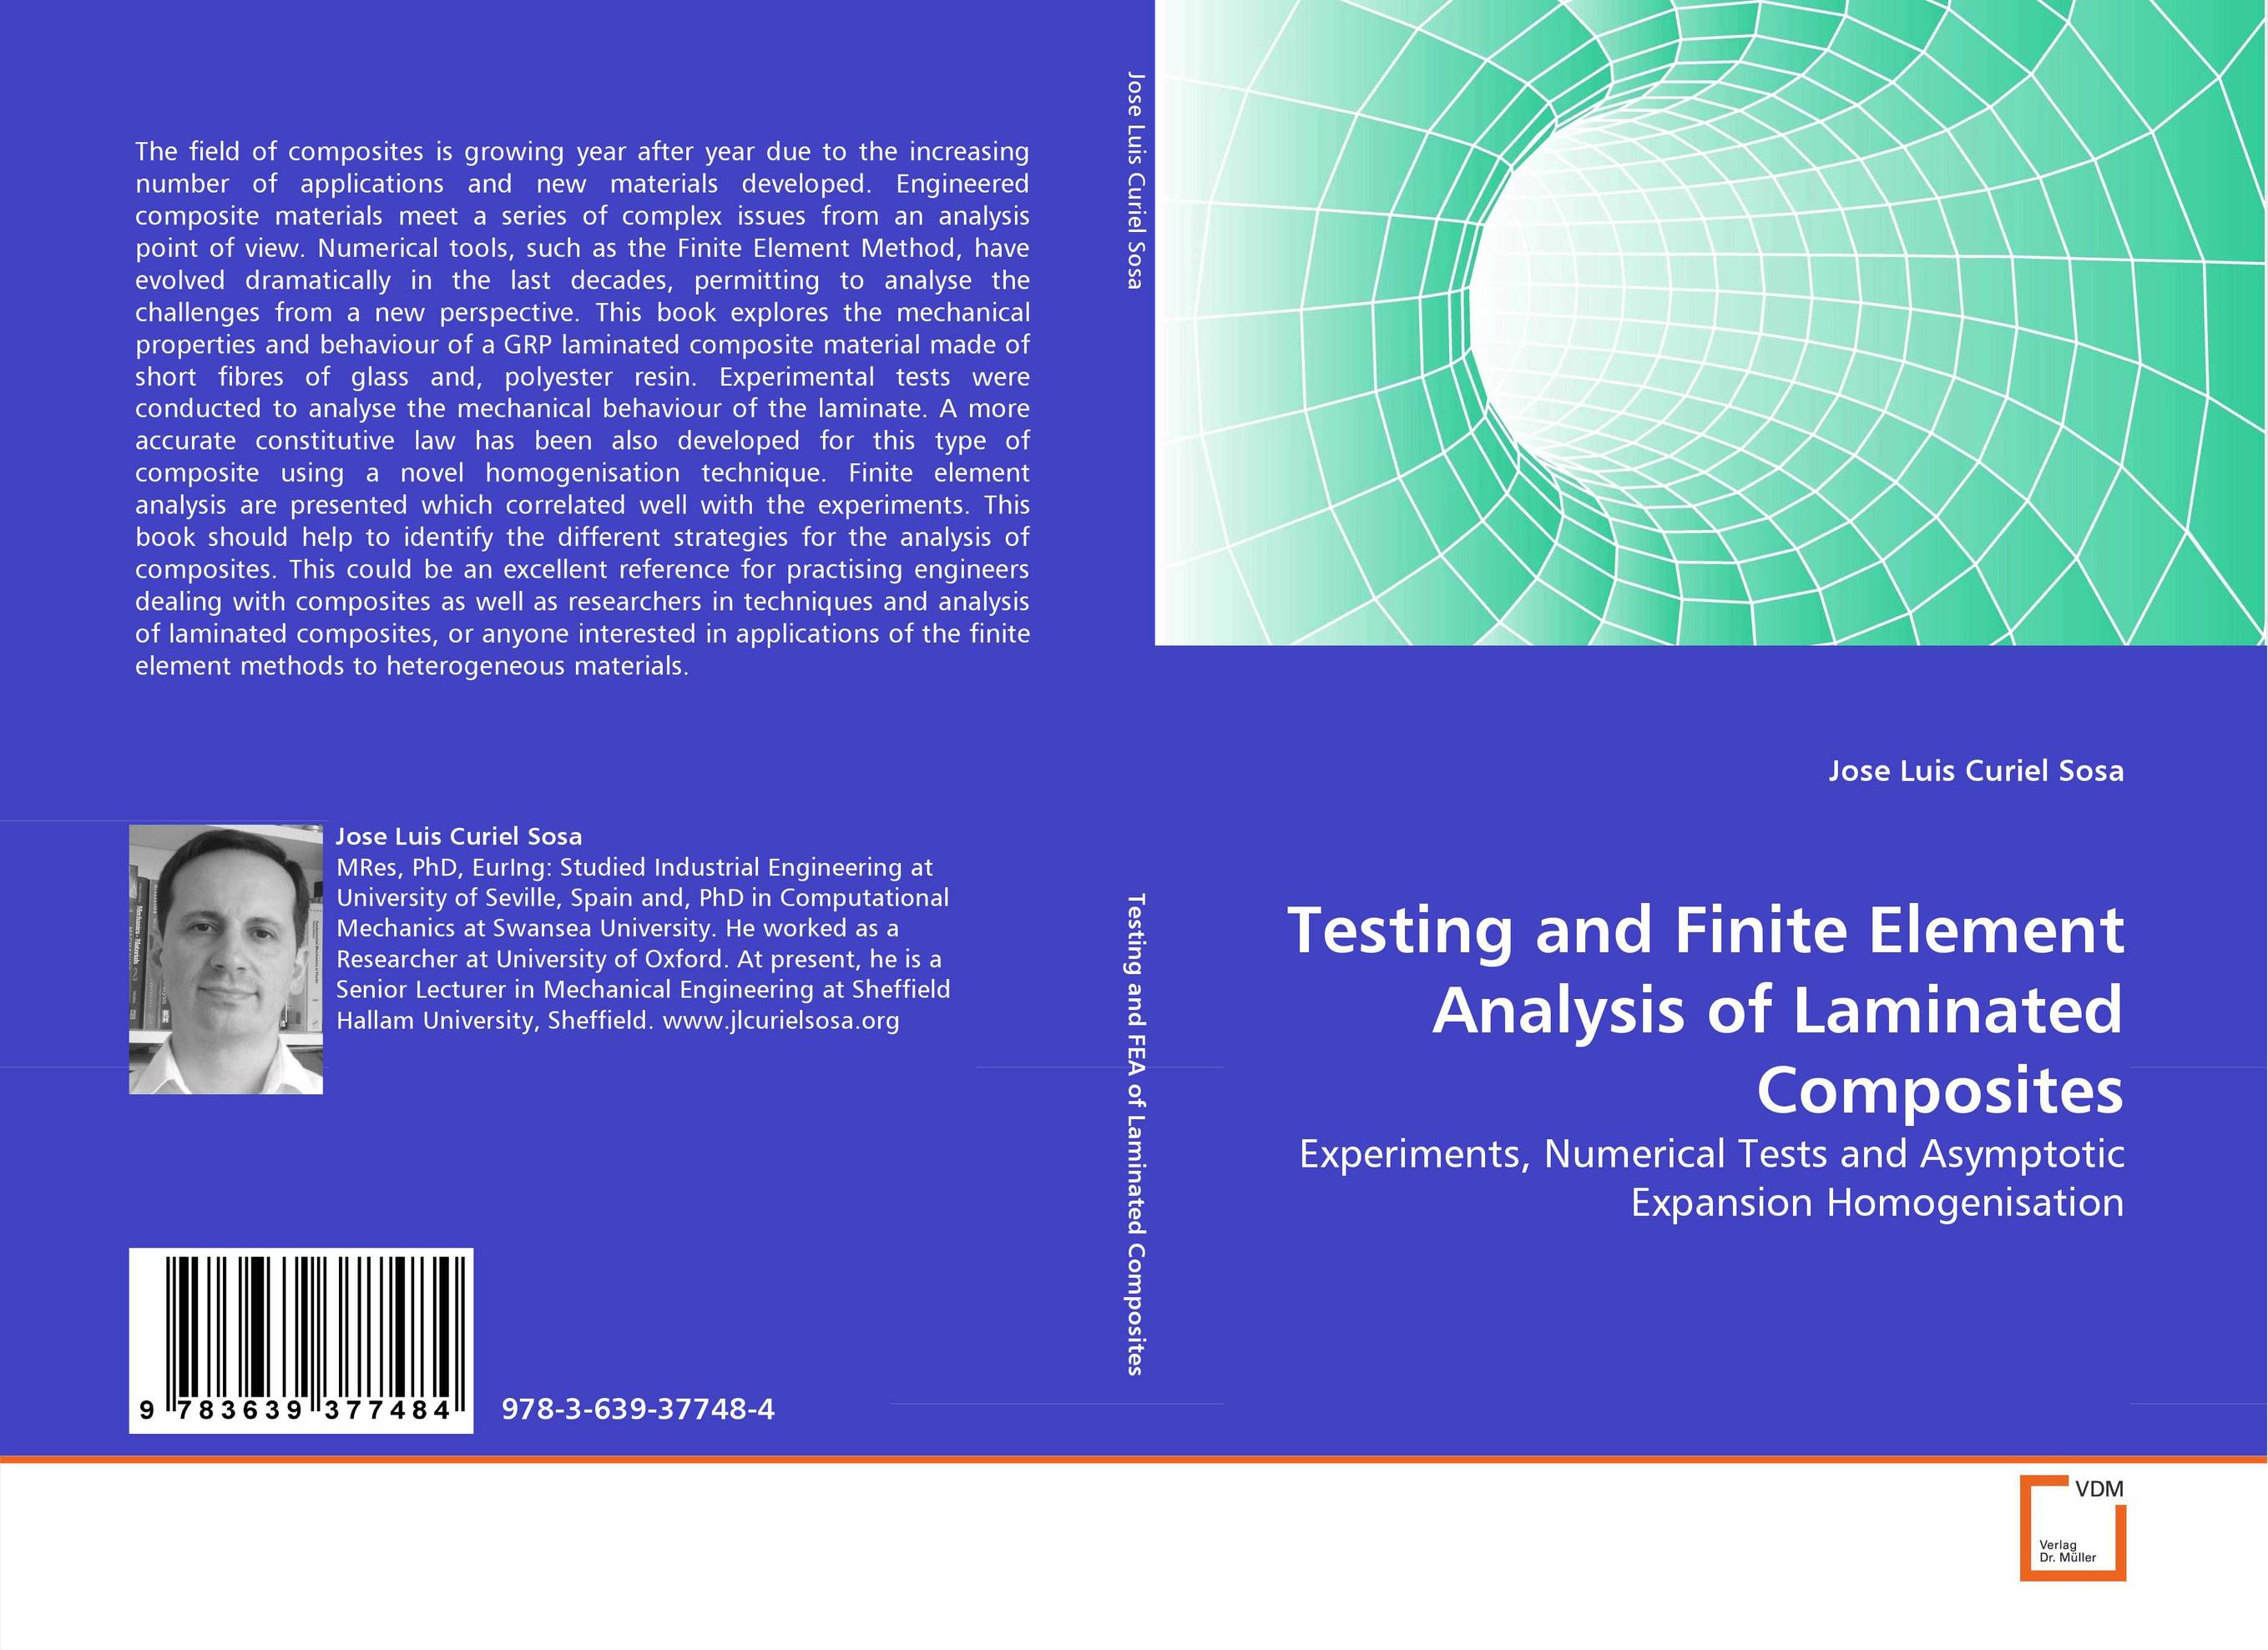 Testing and Finite Element Analysis of Laminated Composites bolted joints in laminated composites